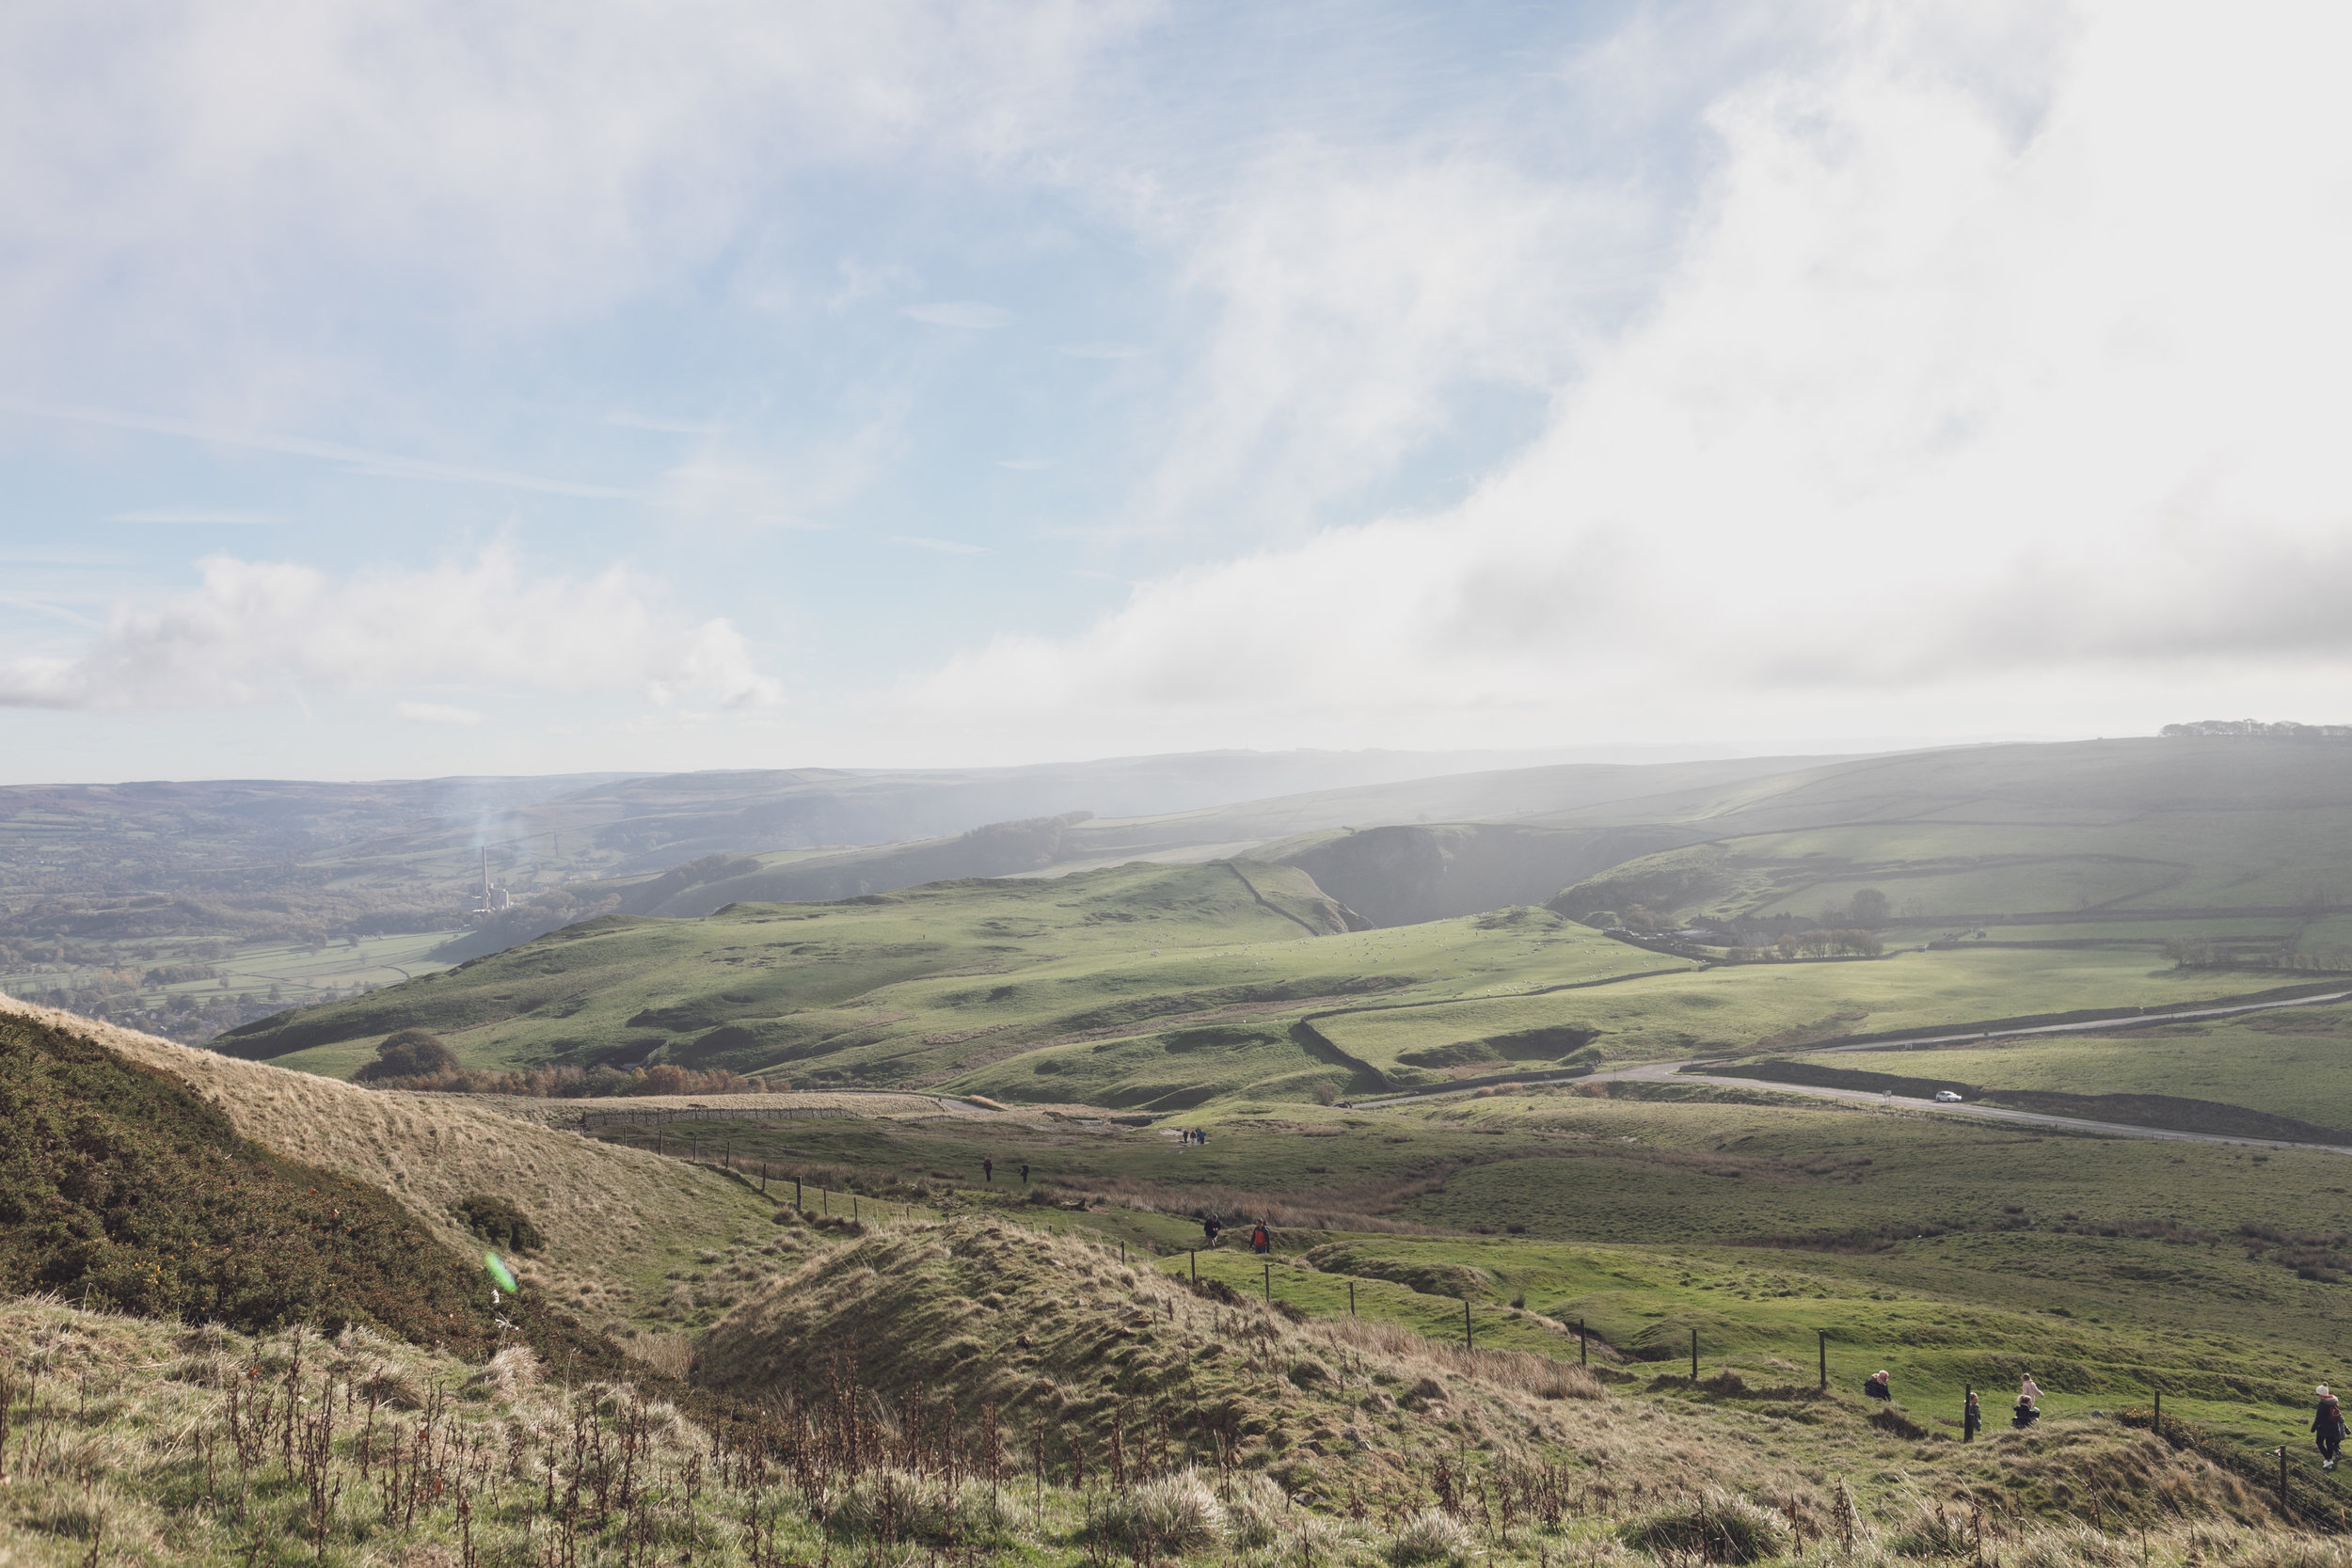 View over the Peak District near Sheffield, England, taken by handmade shoe maker Kenneth McClure